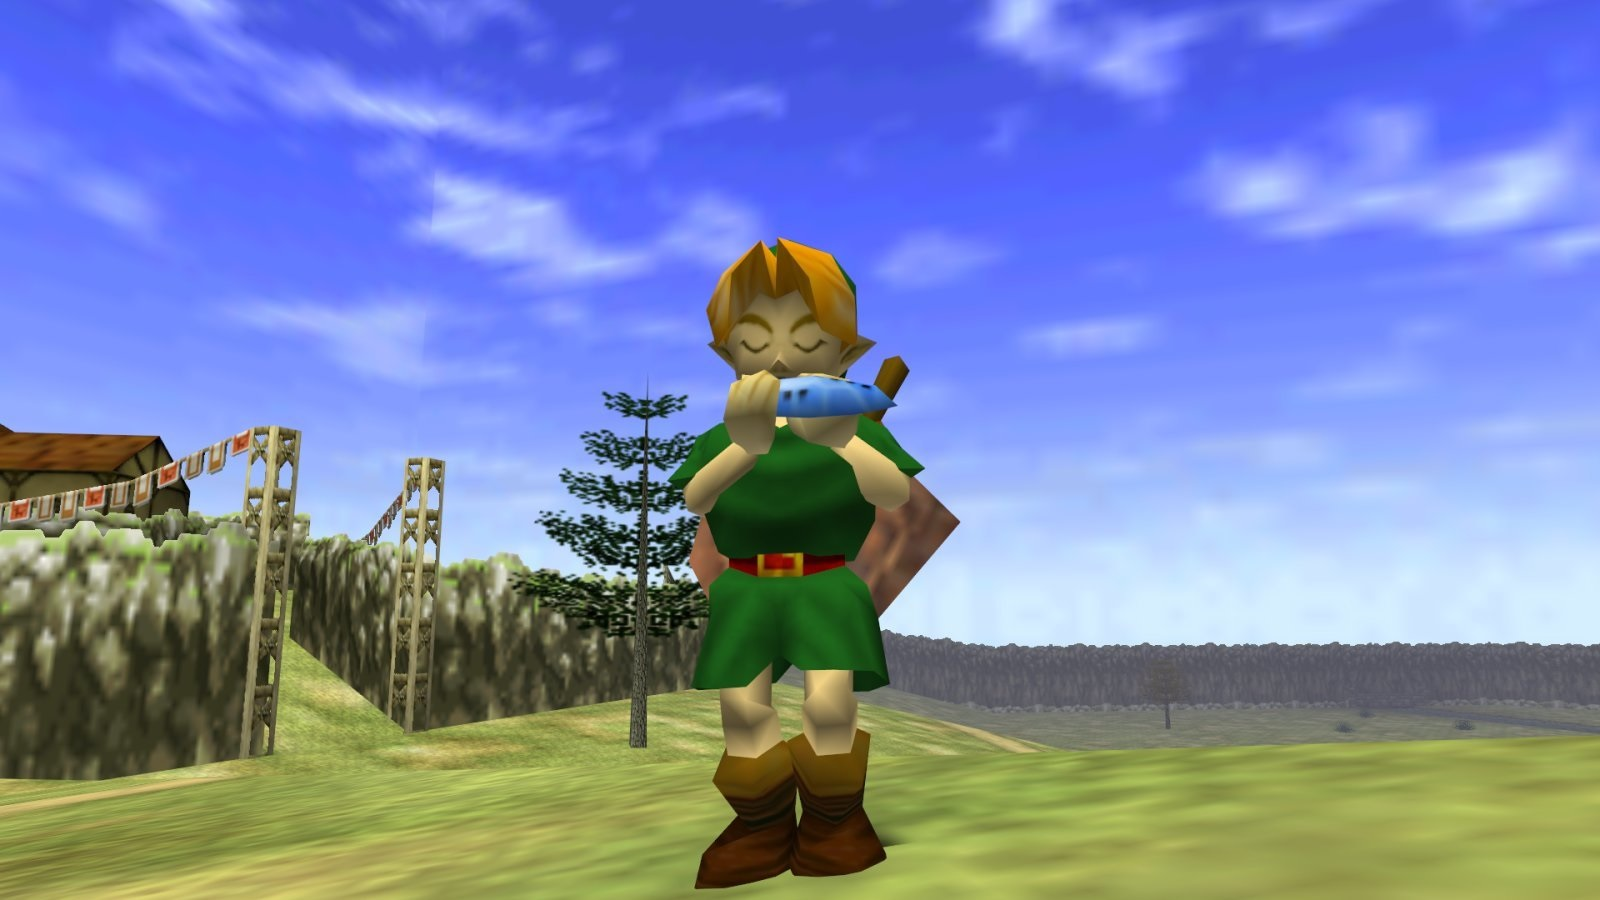 The Legend of Zelda: Ocarina of Time | The 8 Most Influential Video Games of All Time | Gammicks